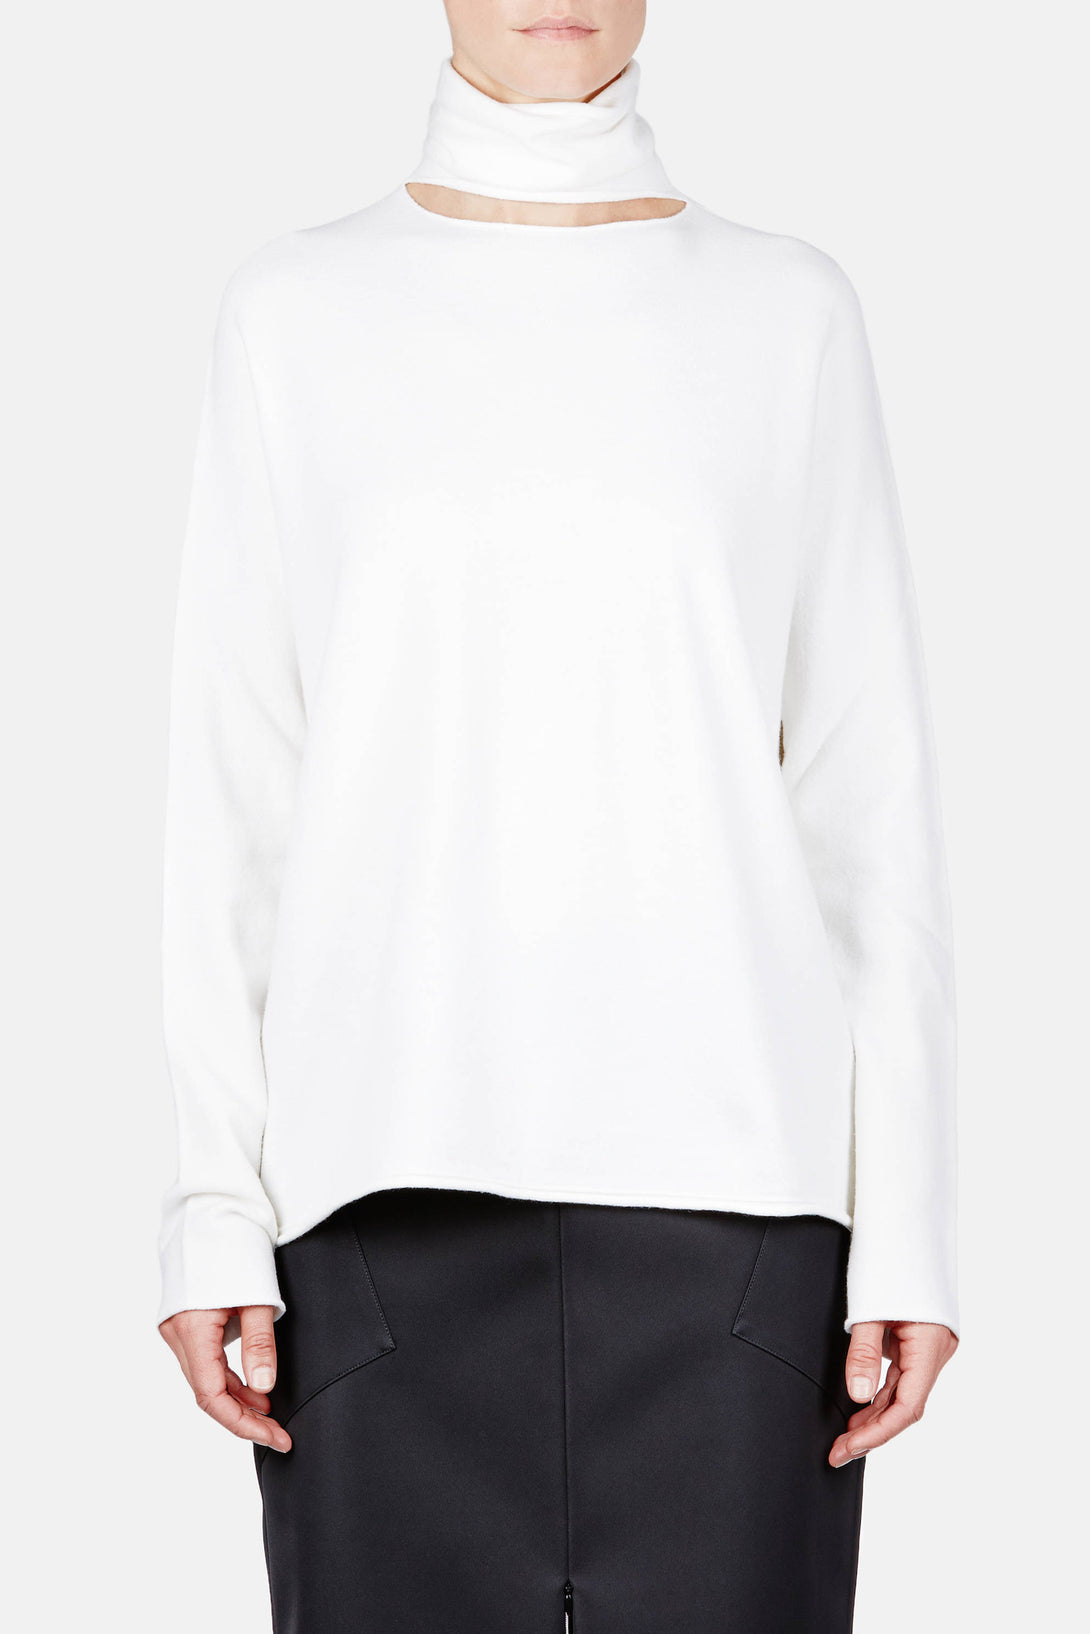 Sweater 02 Deconstructed Turtleneck - Ivory